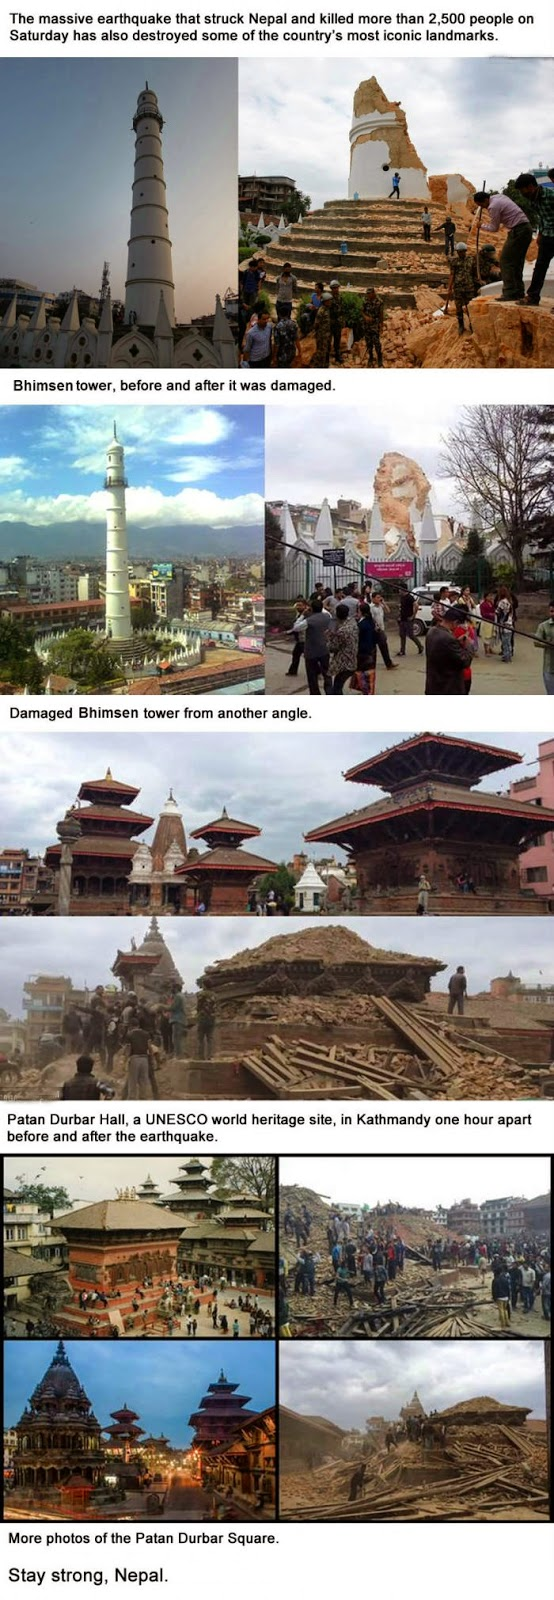 Nepal Earthquake's effects on Bhimsen tower and Patan Durbar Hall.